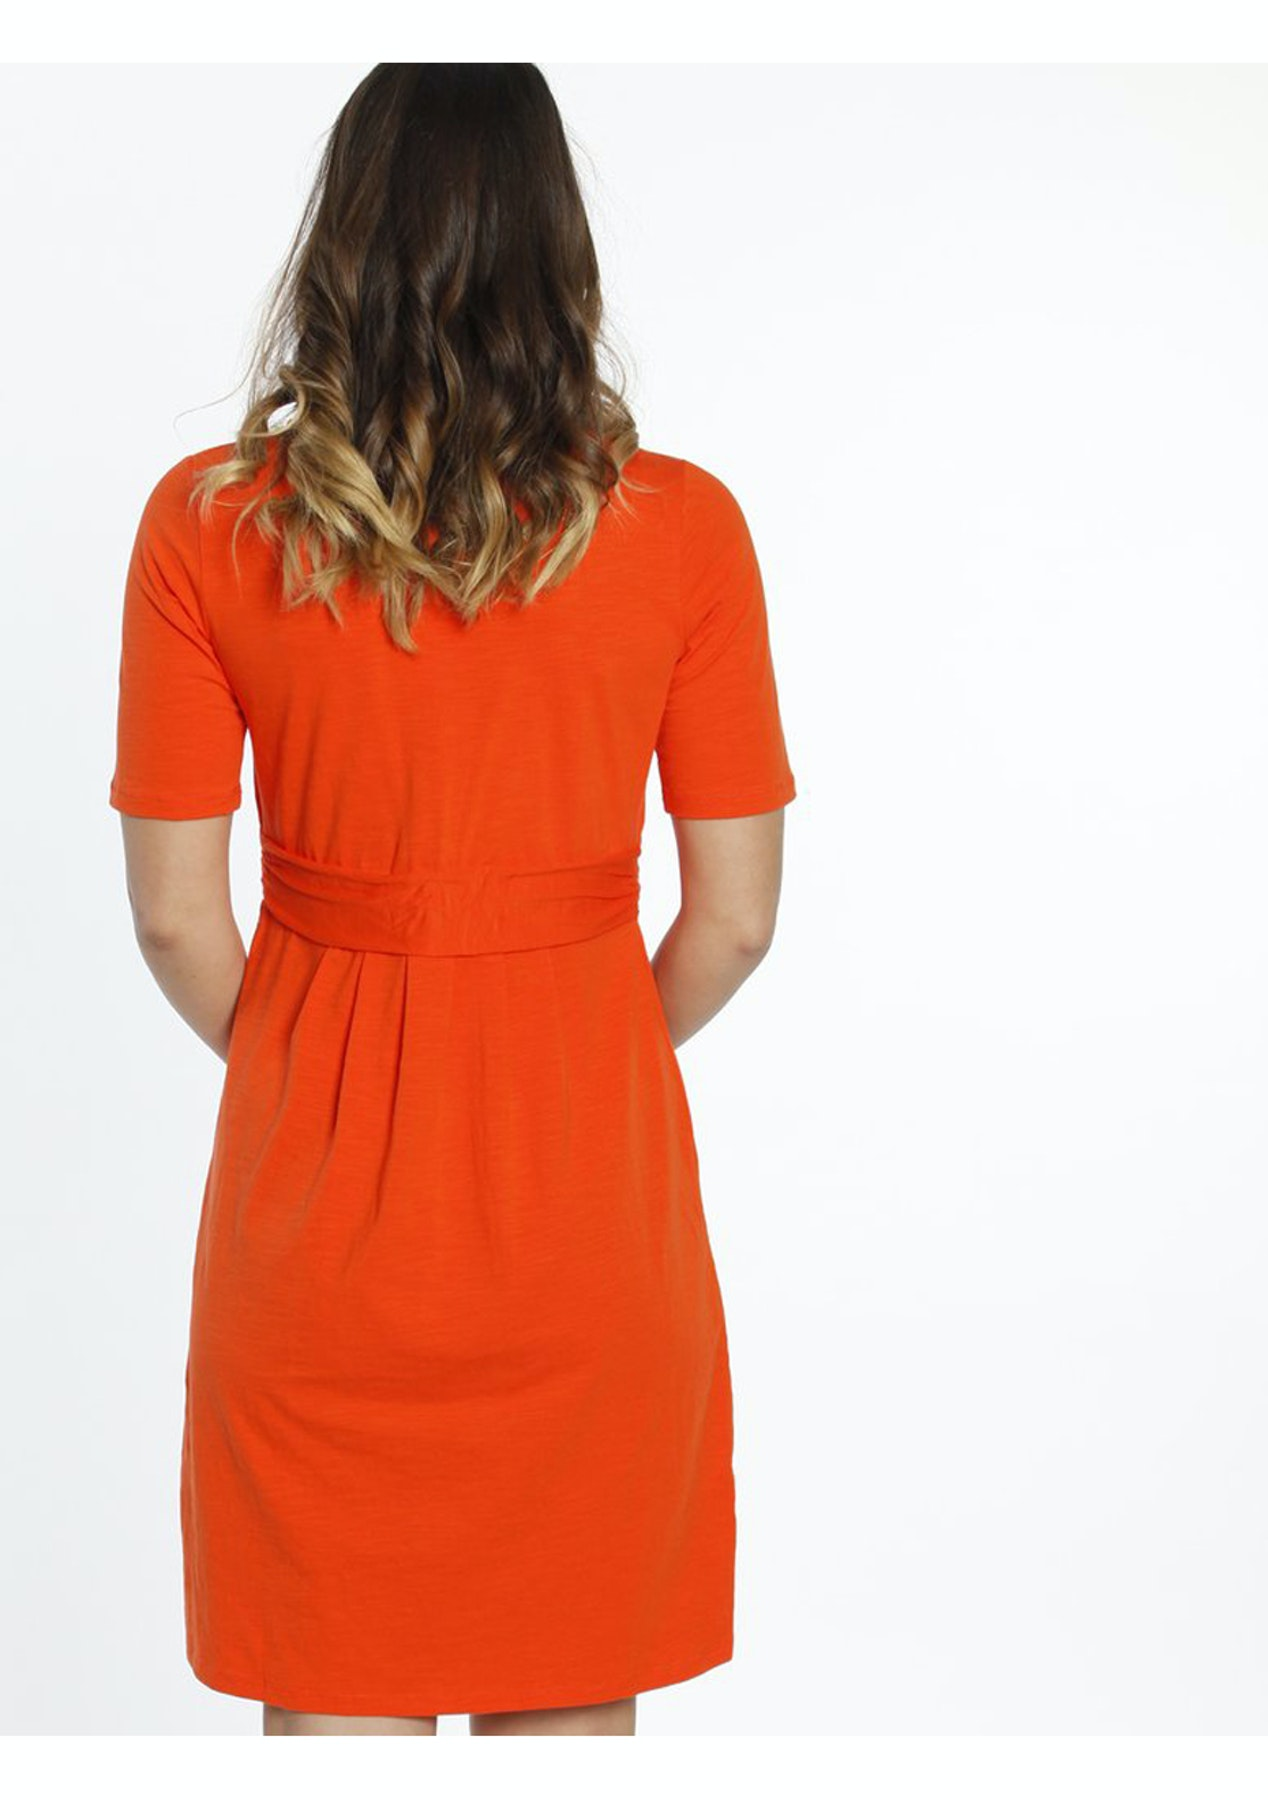 d92755c52ca Angel Maternity - Busy Mummy Nursing Empire Waist Dress in Tangerine - Love  Your Bump - On Trend Maternity Wear - Onceit